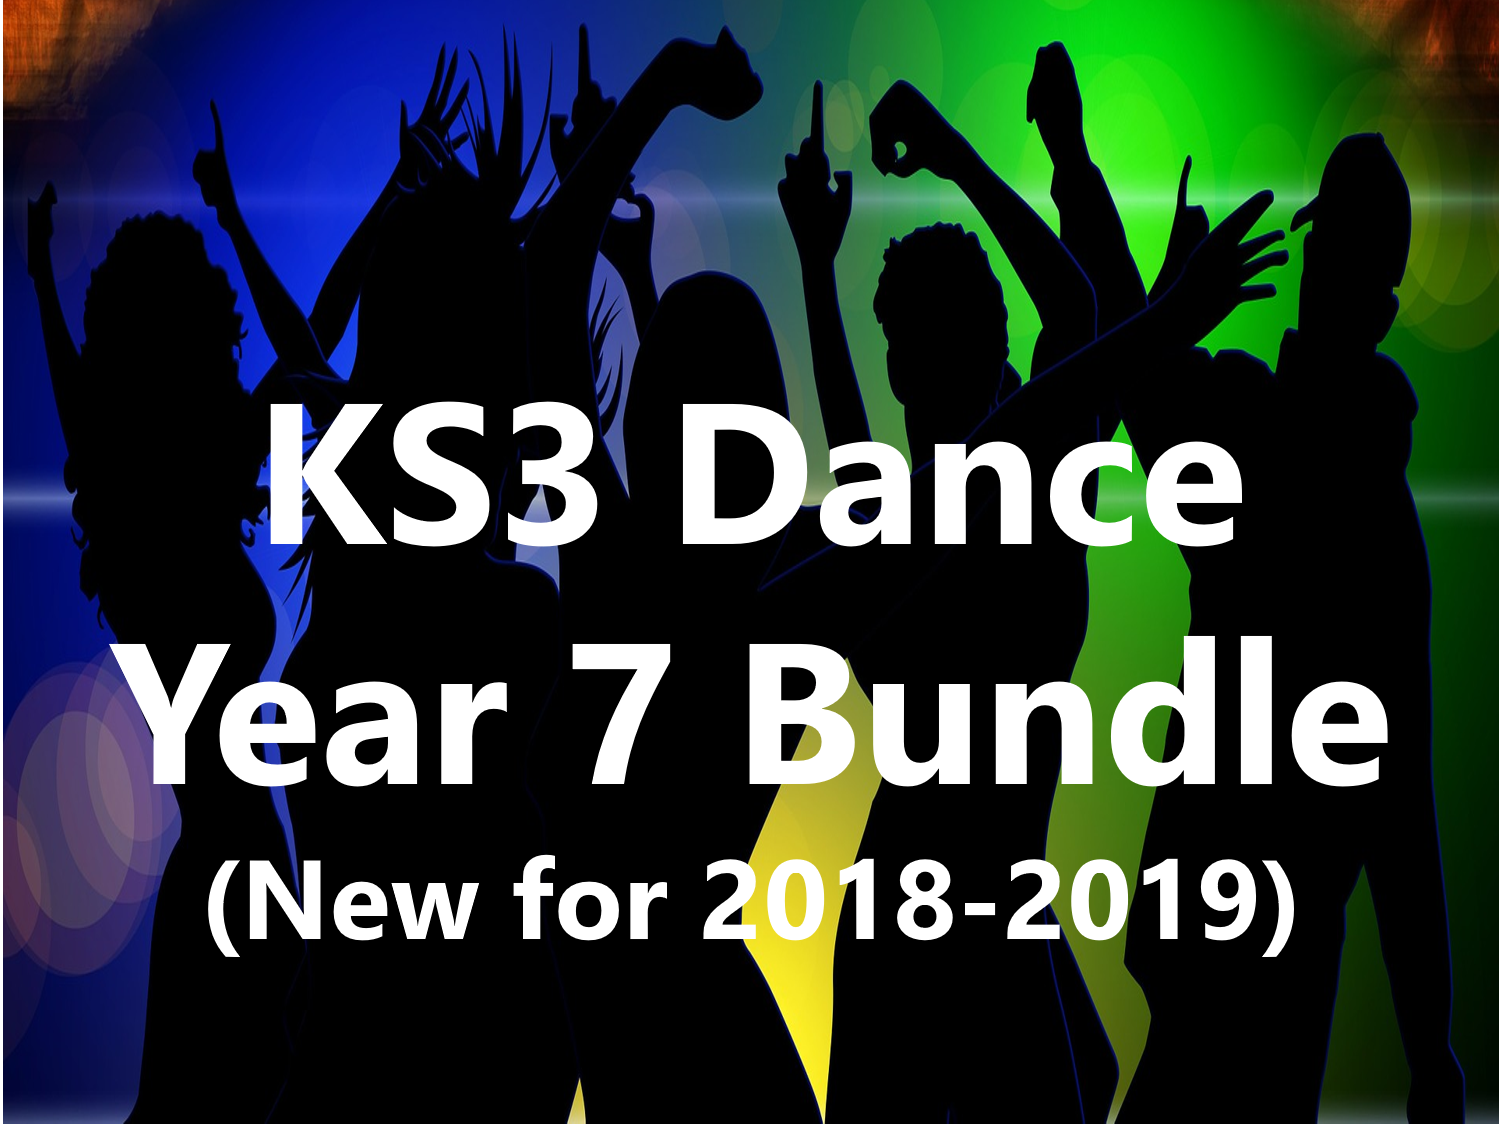 KS3 Dance: Year 7 Bundle (New for 2018-2019)